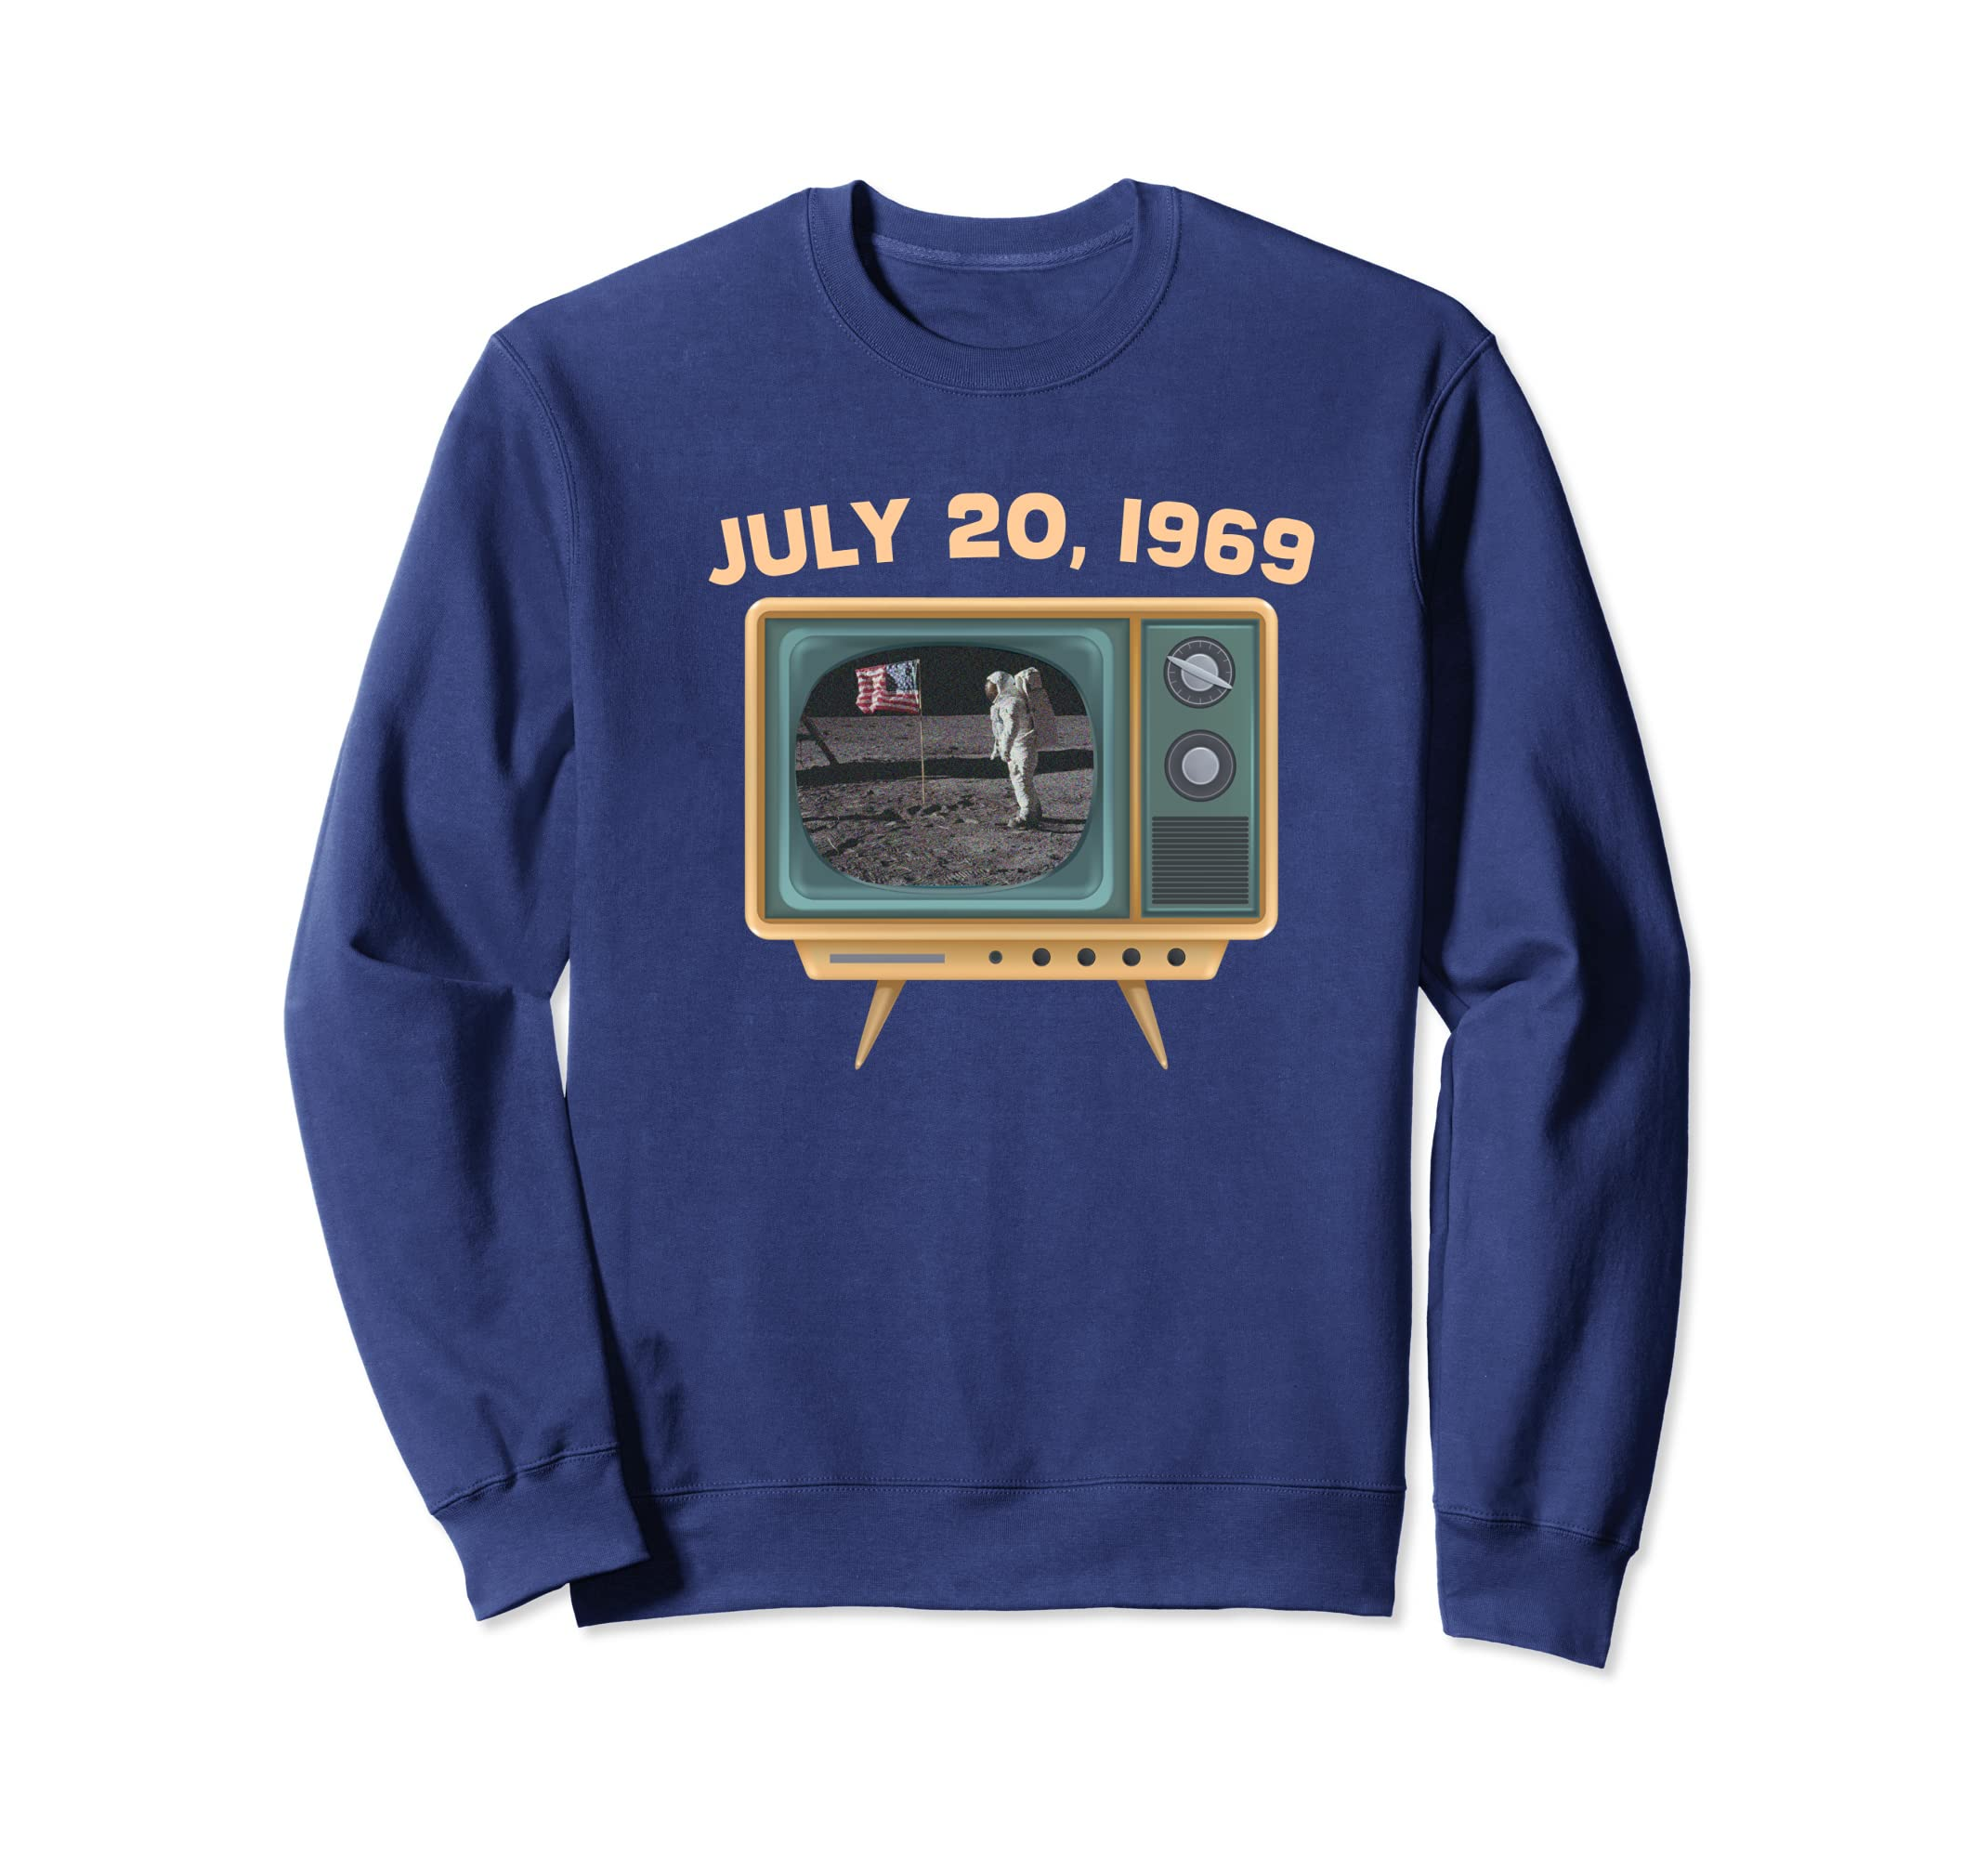 1969 Vintage Look Moon Landing Sweatshirt Old TV set-SFL